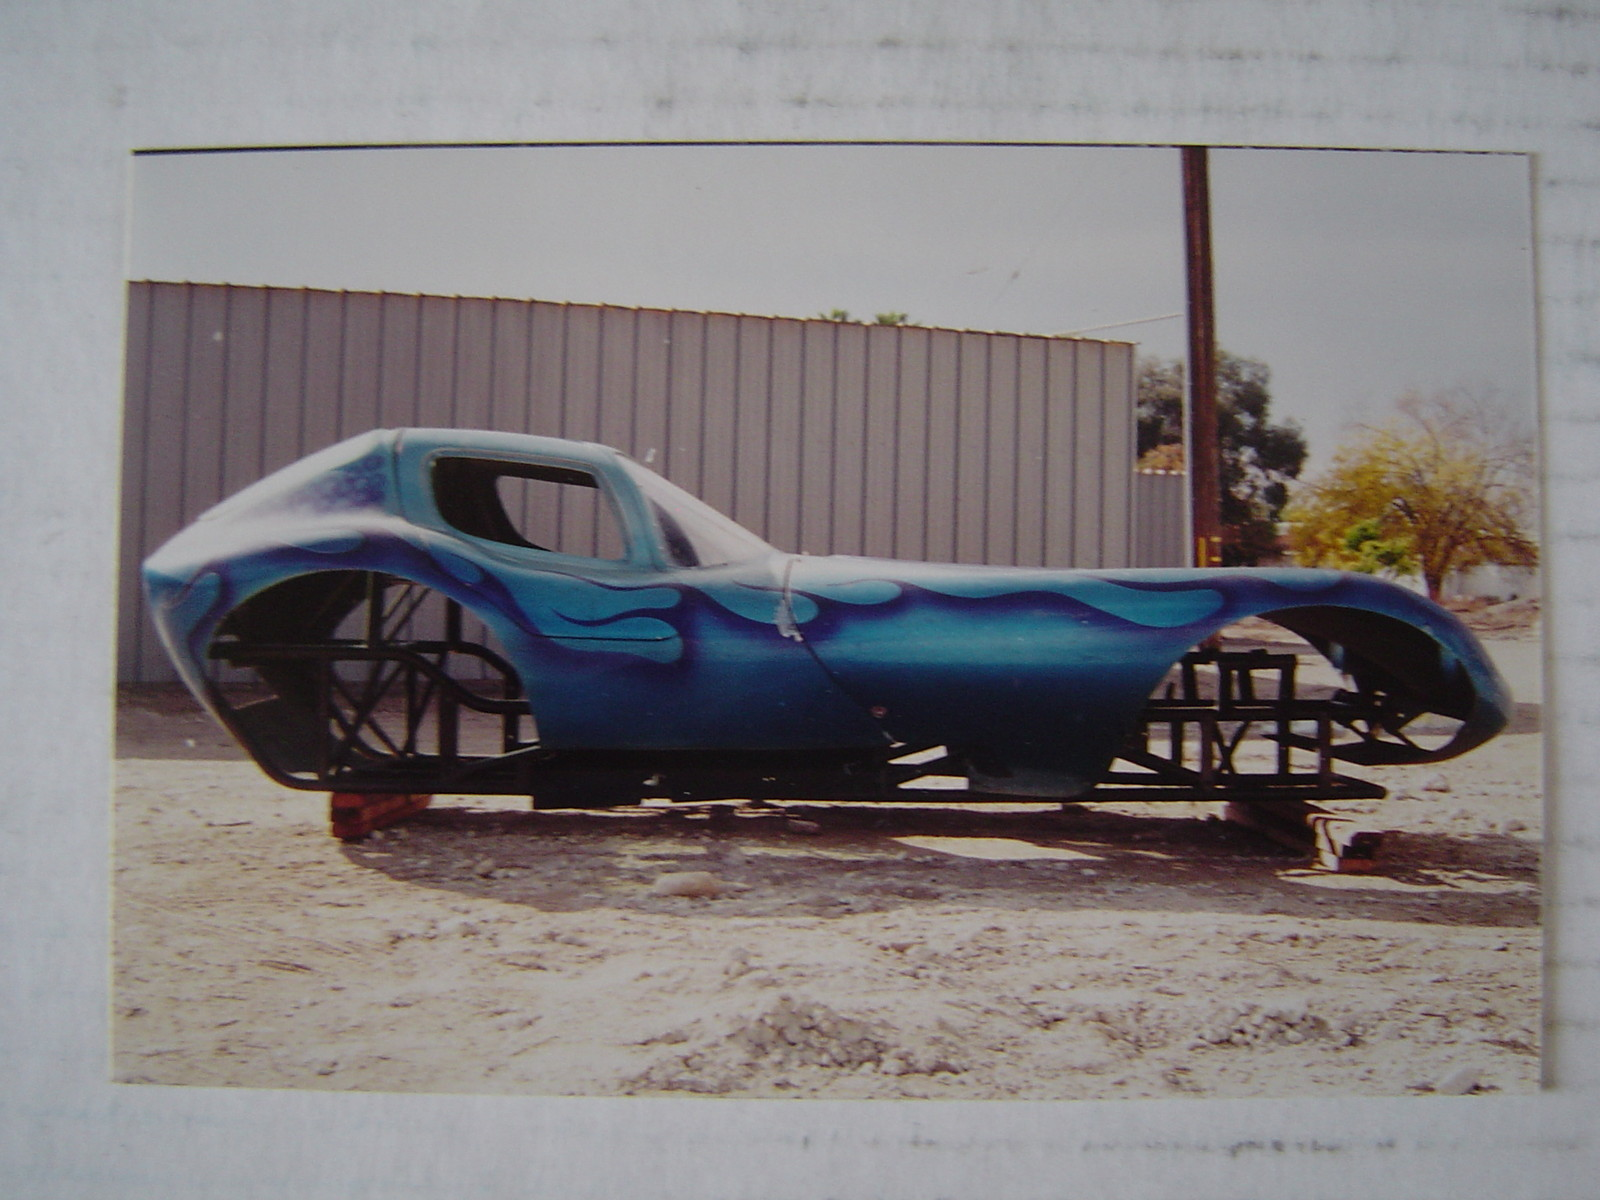 Amazing eBay Find: A Real Deal 1965 Fiberglass Trends Cheetah With Its Original Chassis! Drag Cheetah Greatness!